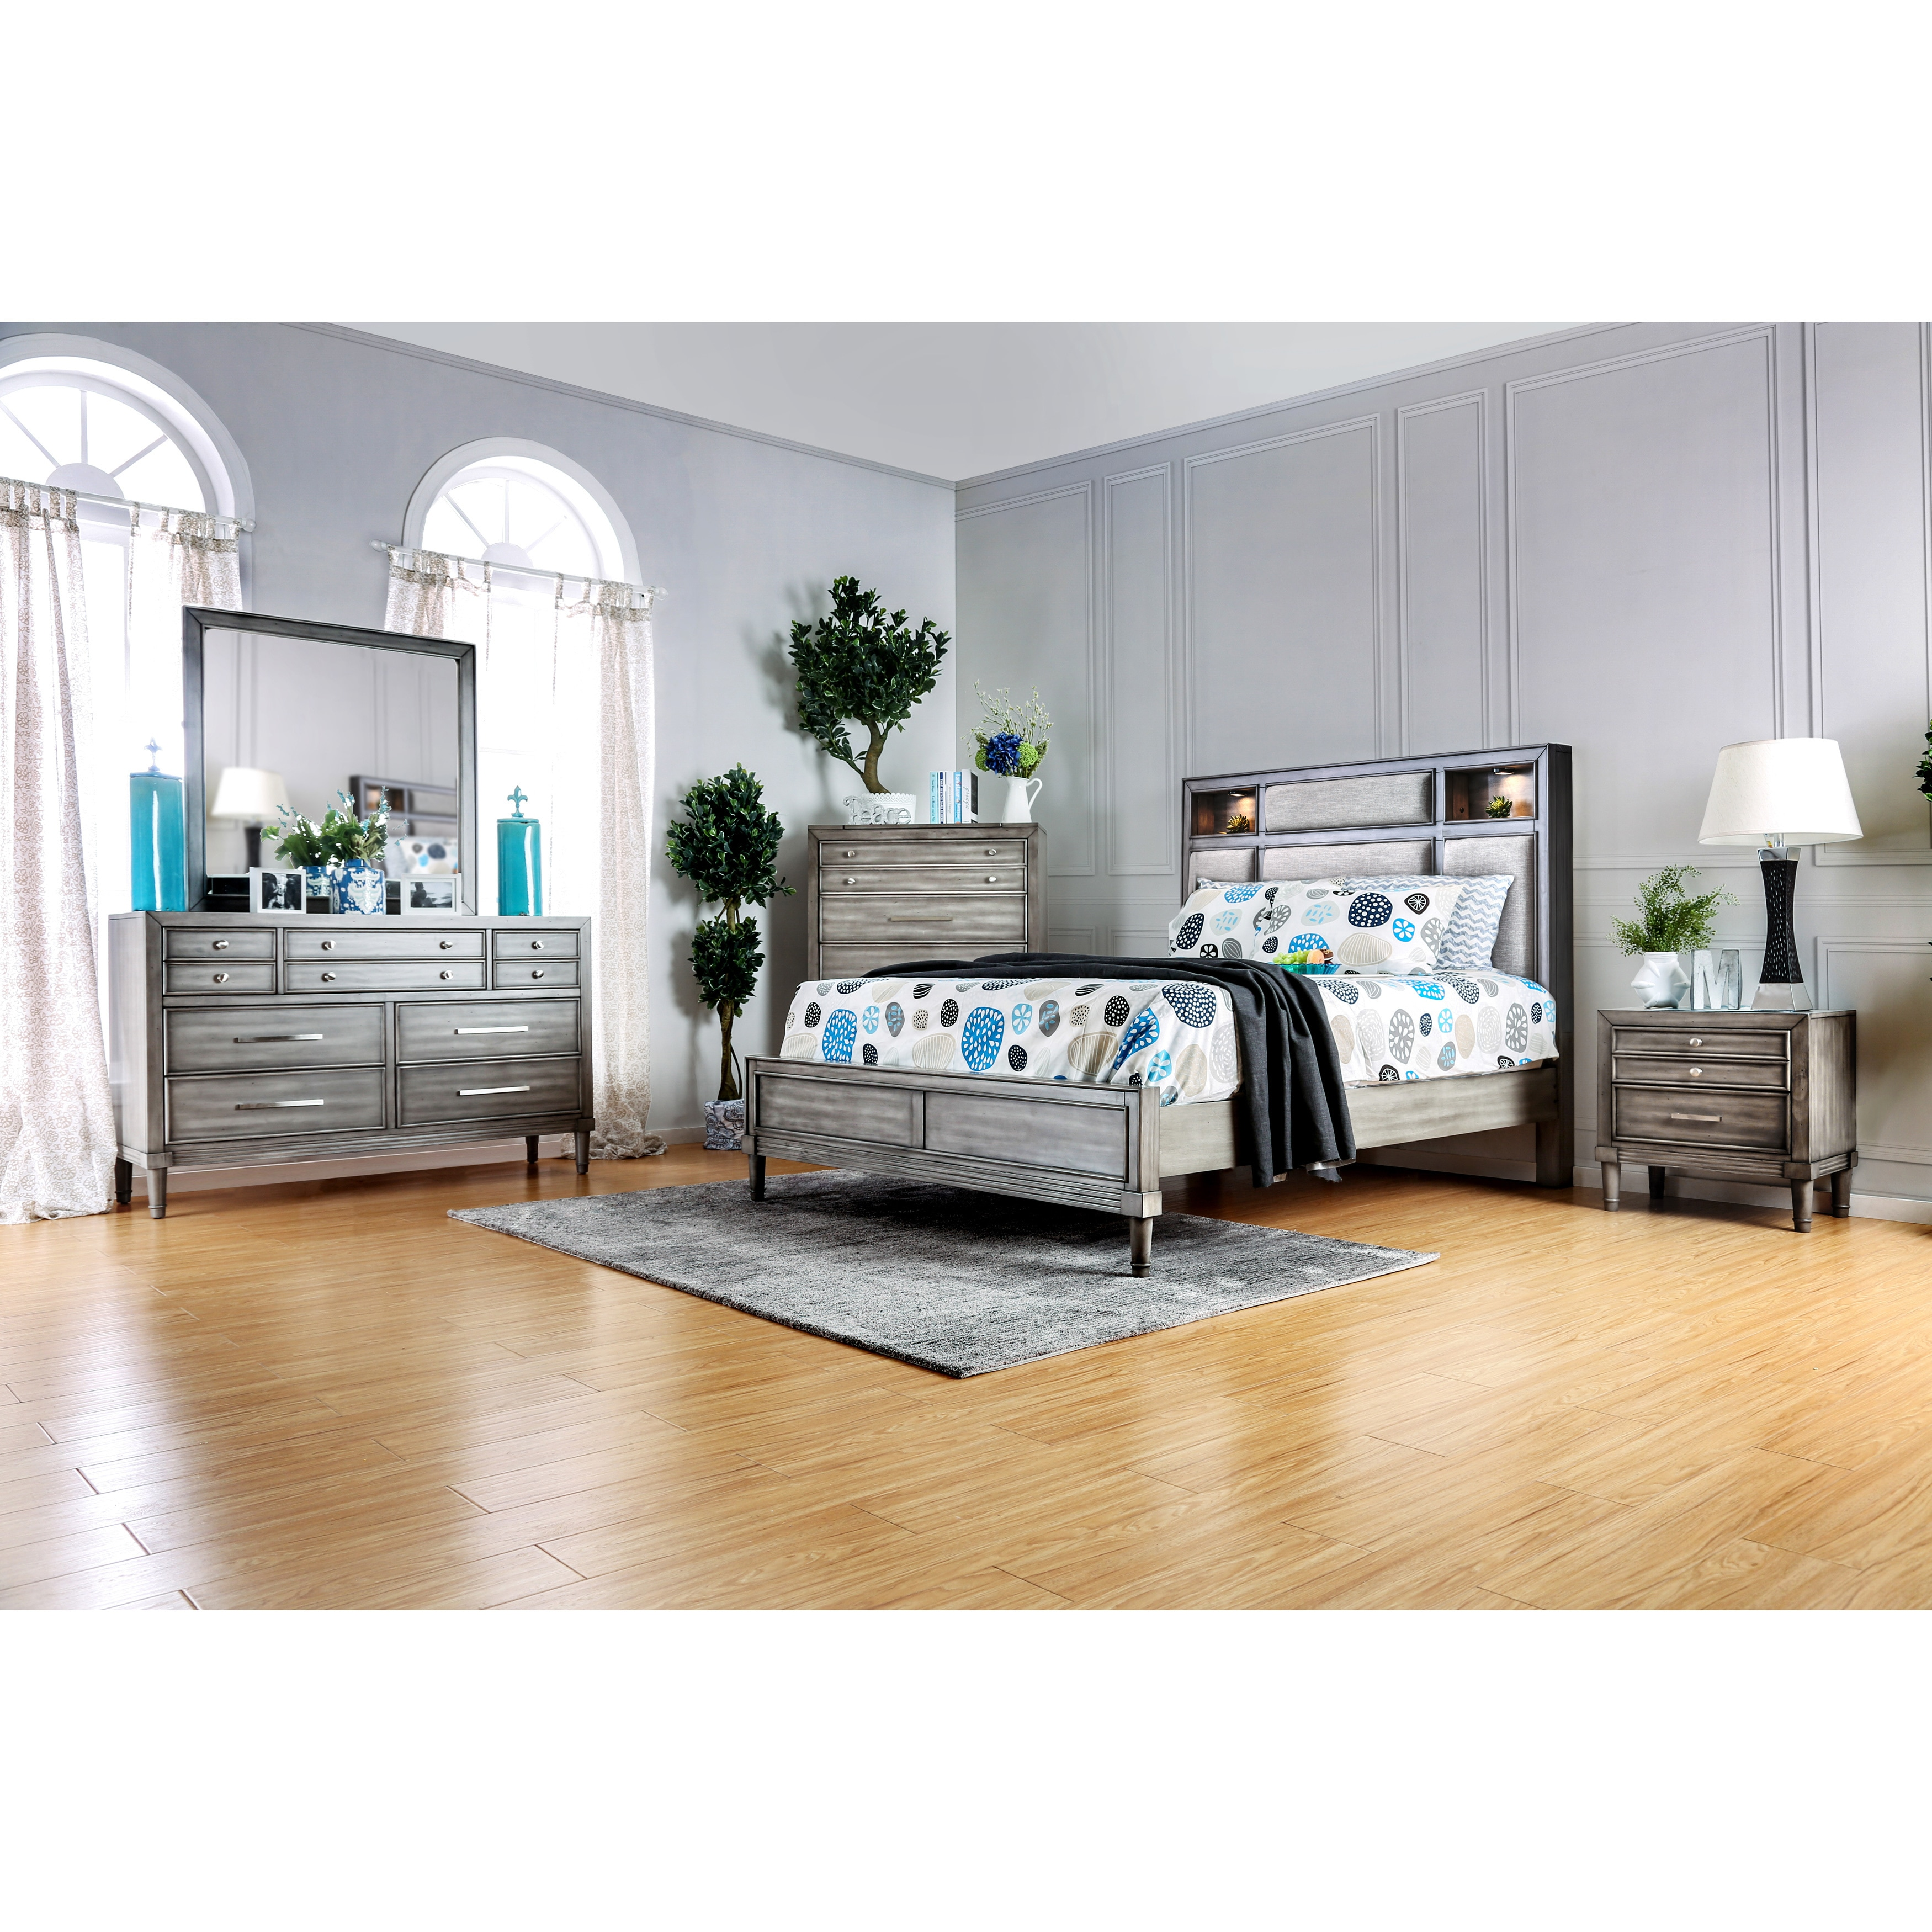 Furniture of america braysen transitional 4 piece bookcase - Bedroom furniture bookcase headboard ...